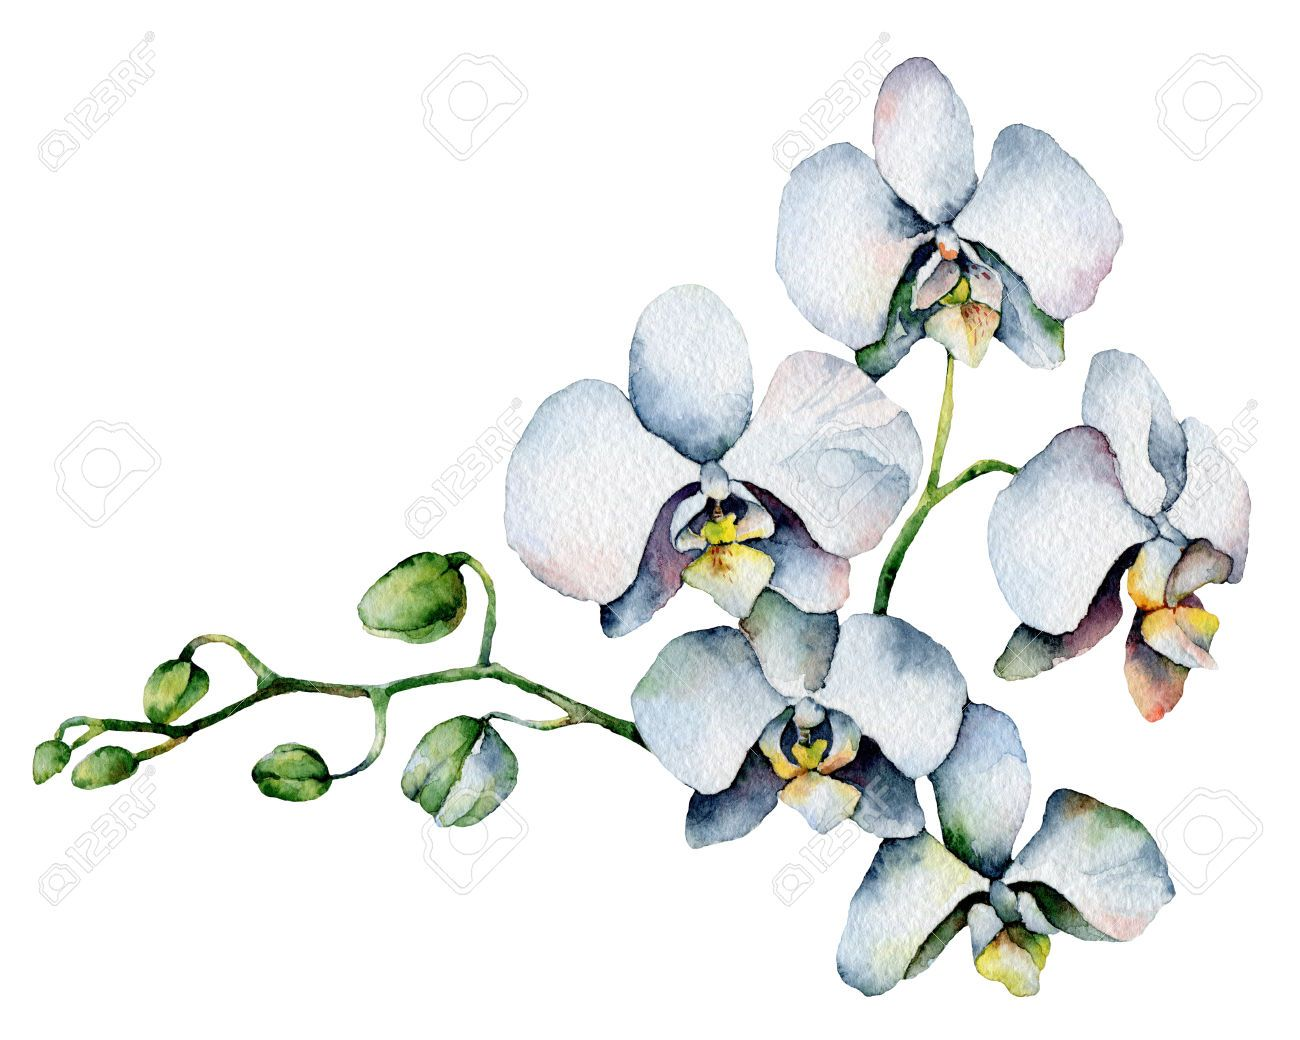 27451634-Single-orchid-isolated-on-white-background-Watercolor-Painting-Stock-Photo.jpg (1300×1040)